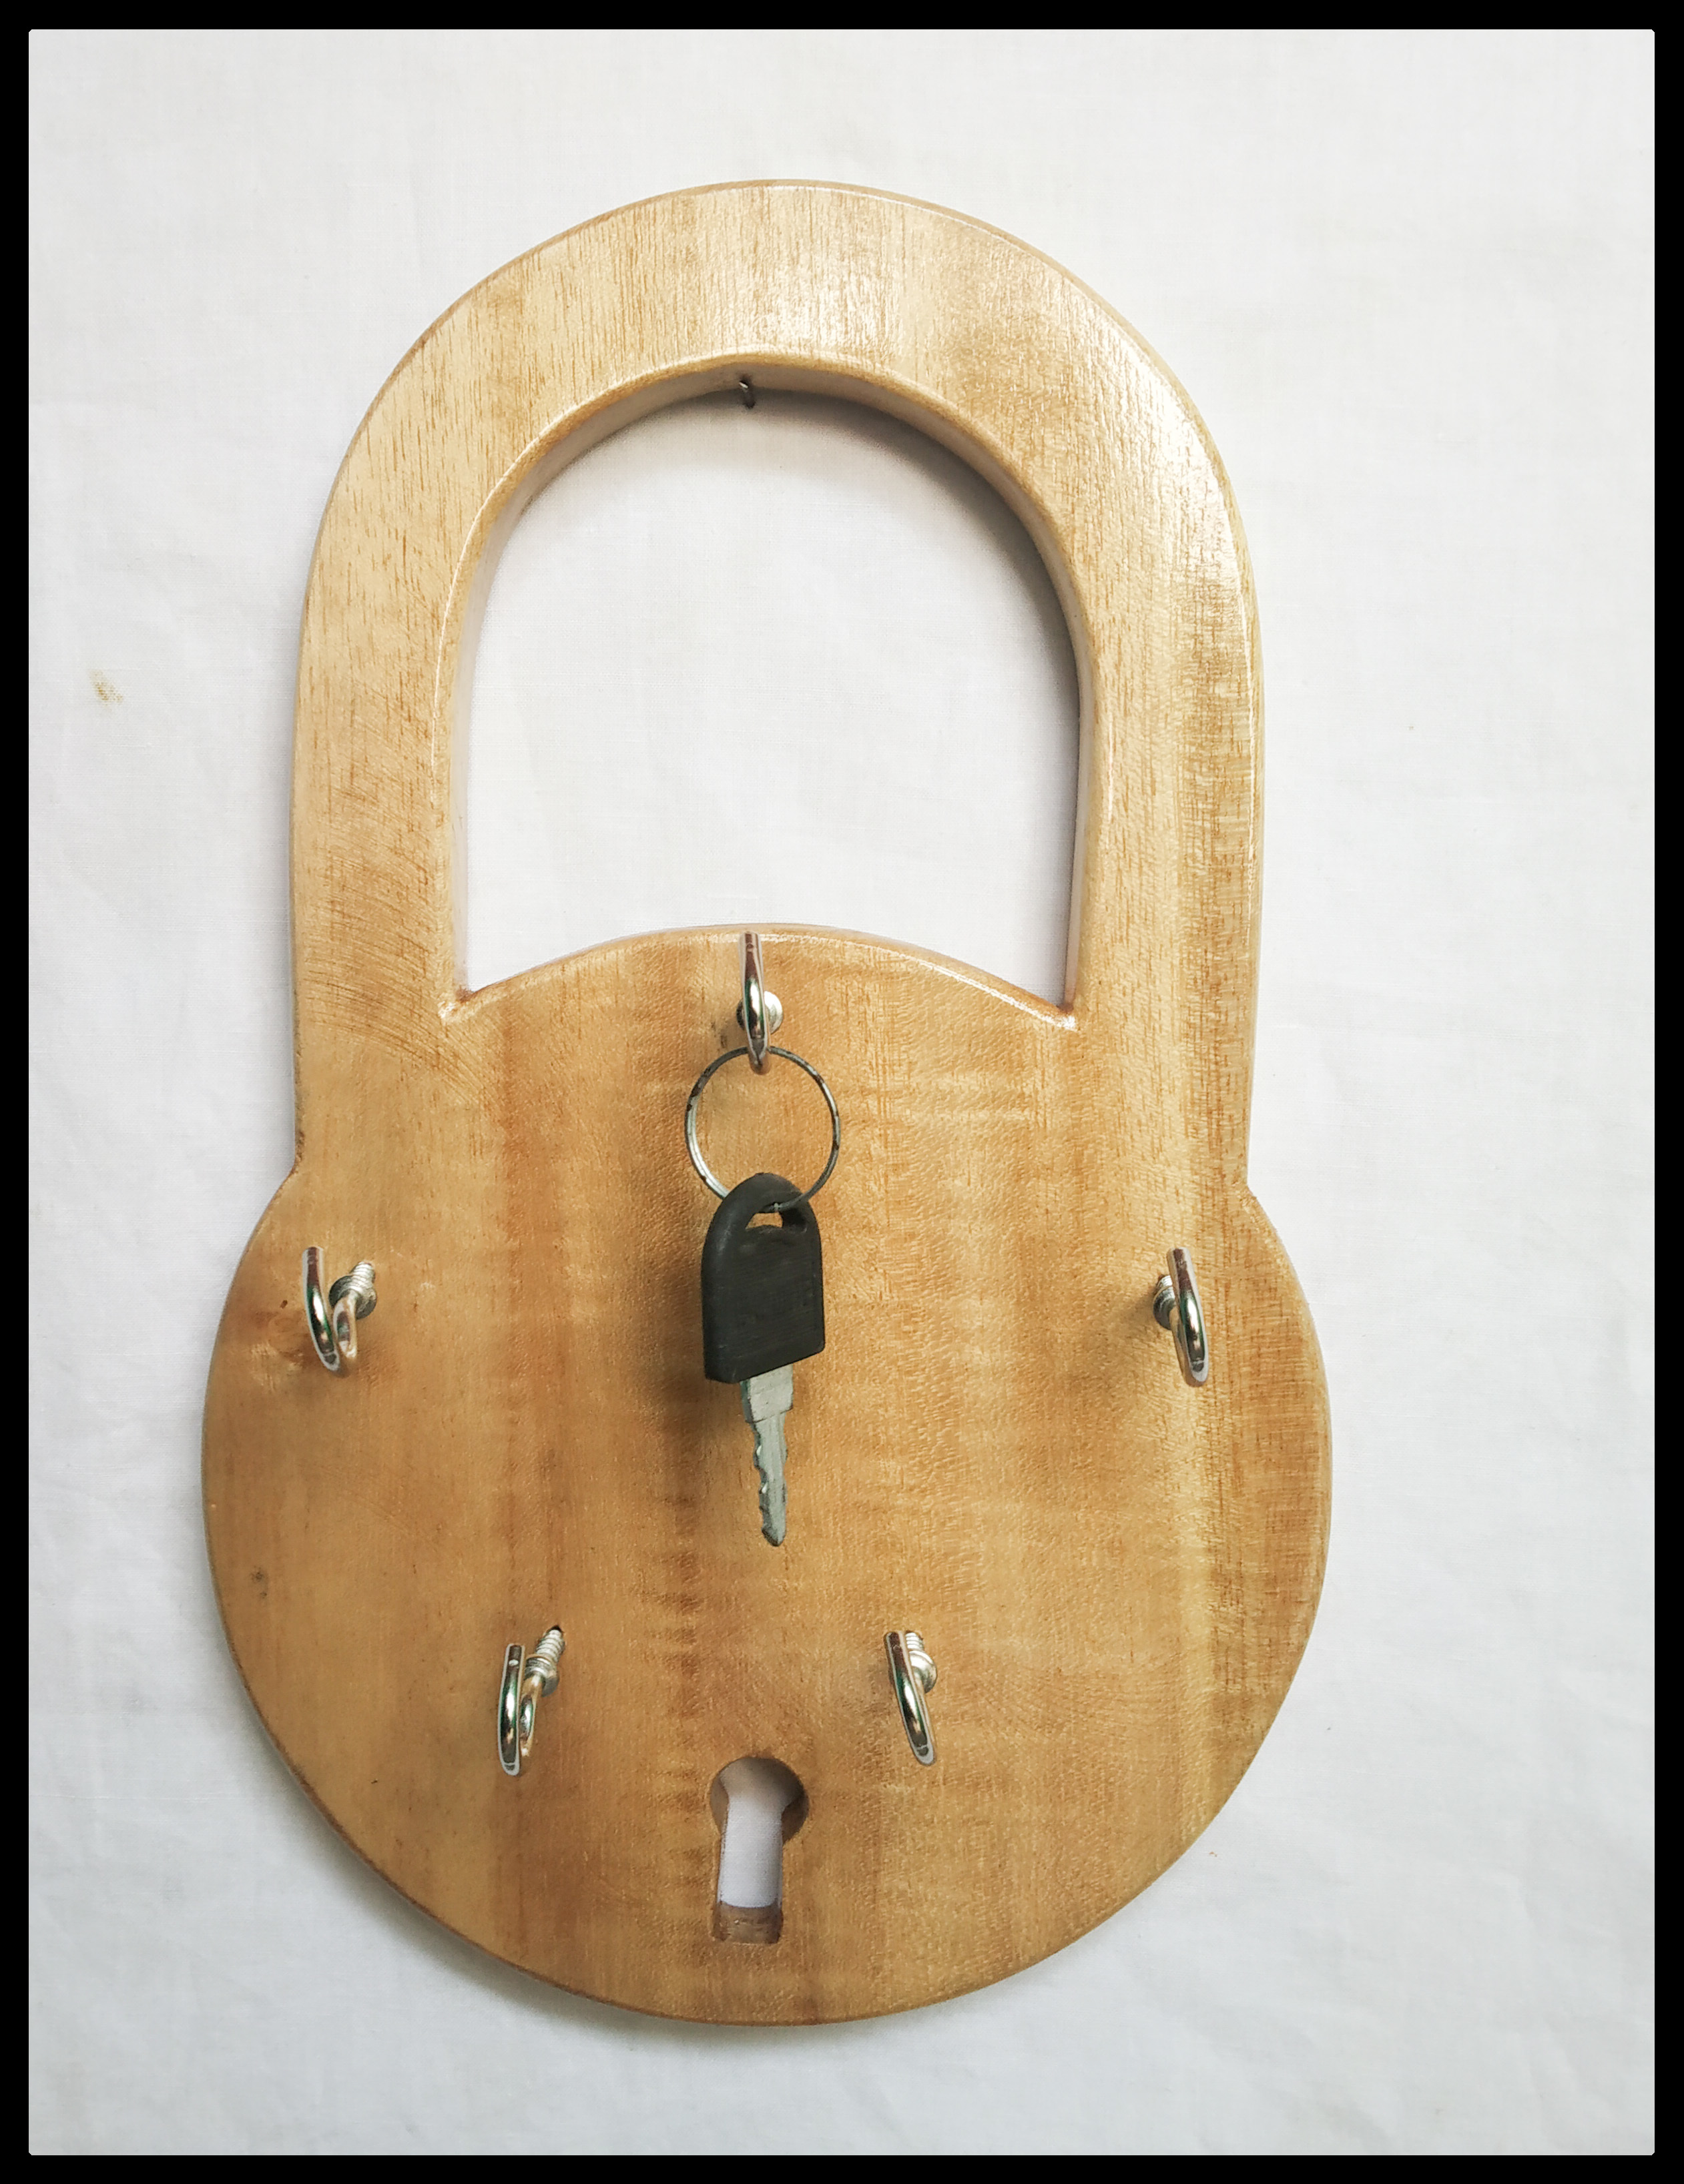 Handmade Wooden Key Holder